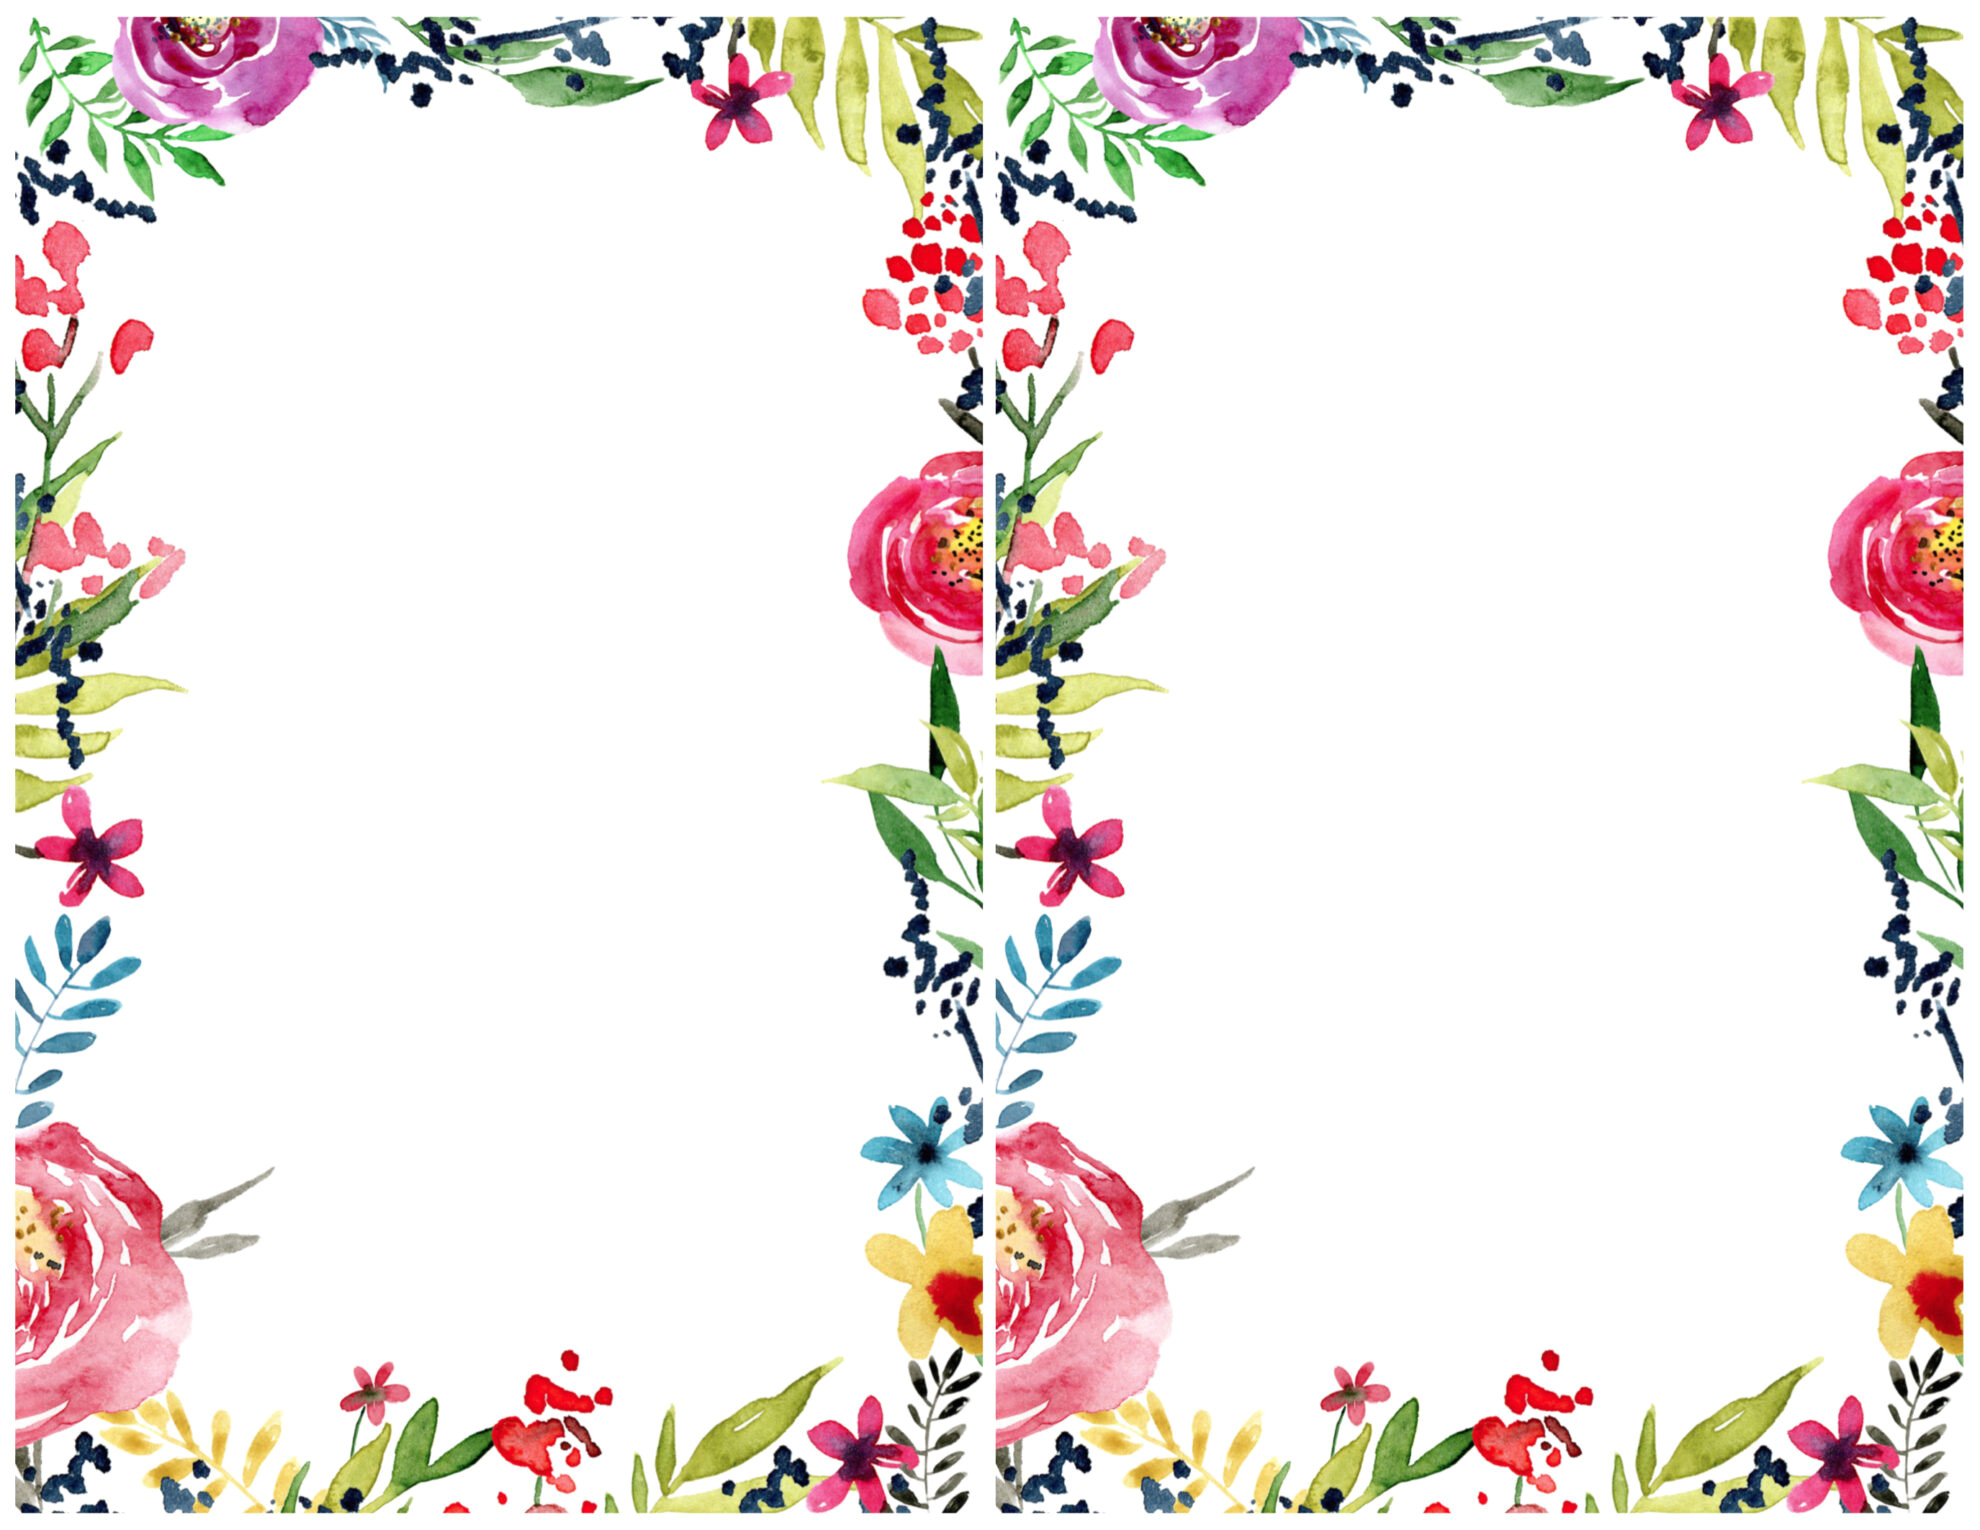 floral borders invitations free printable templates